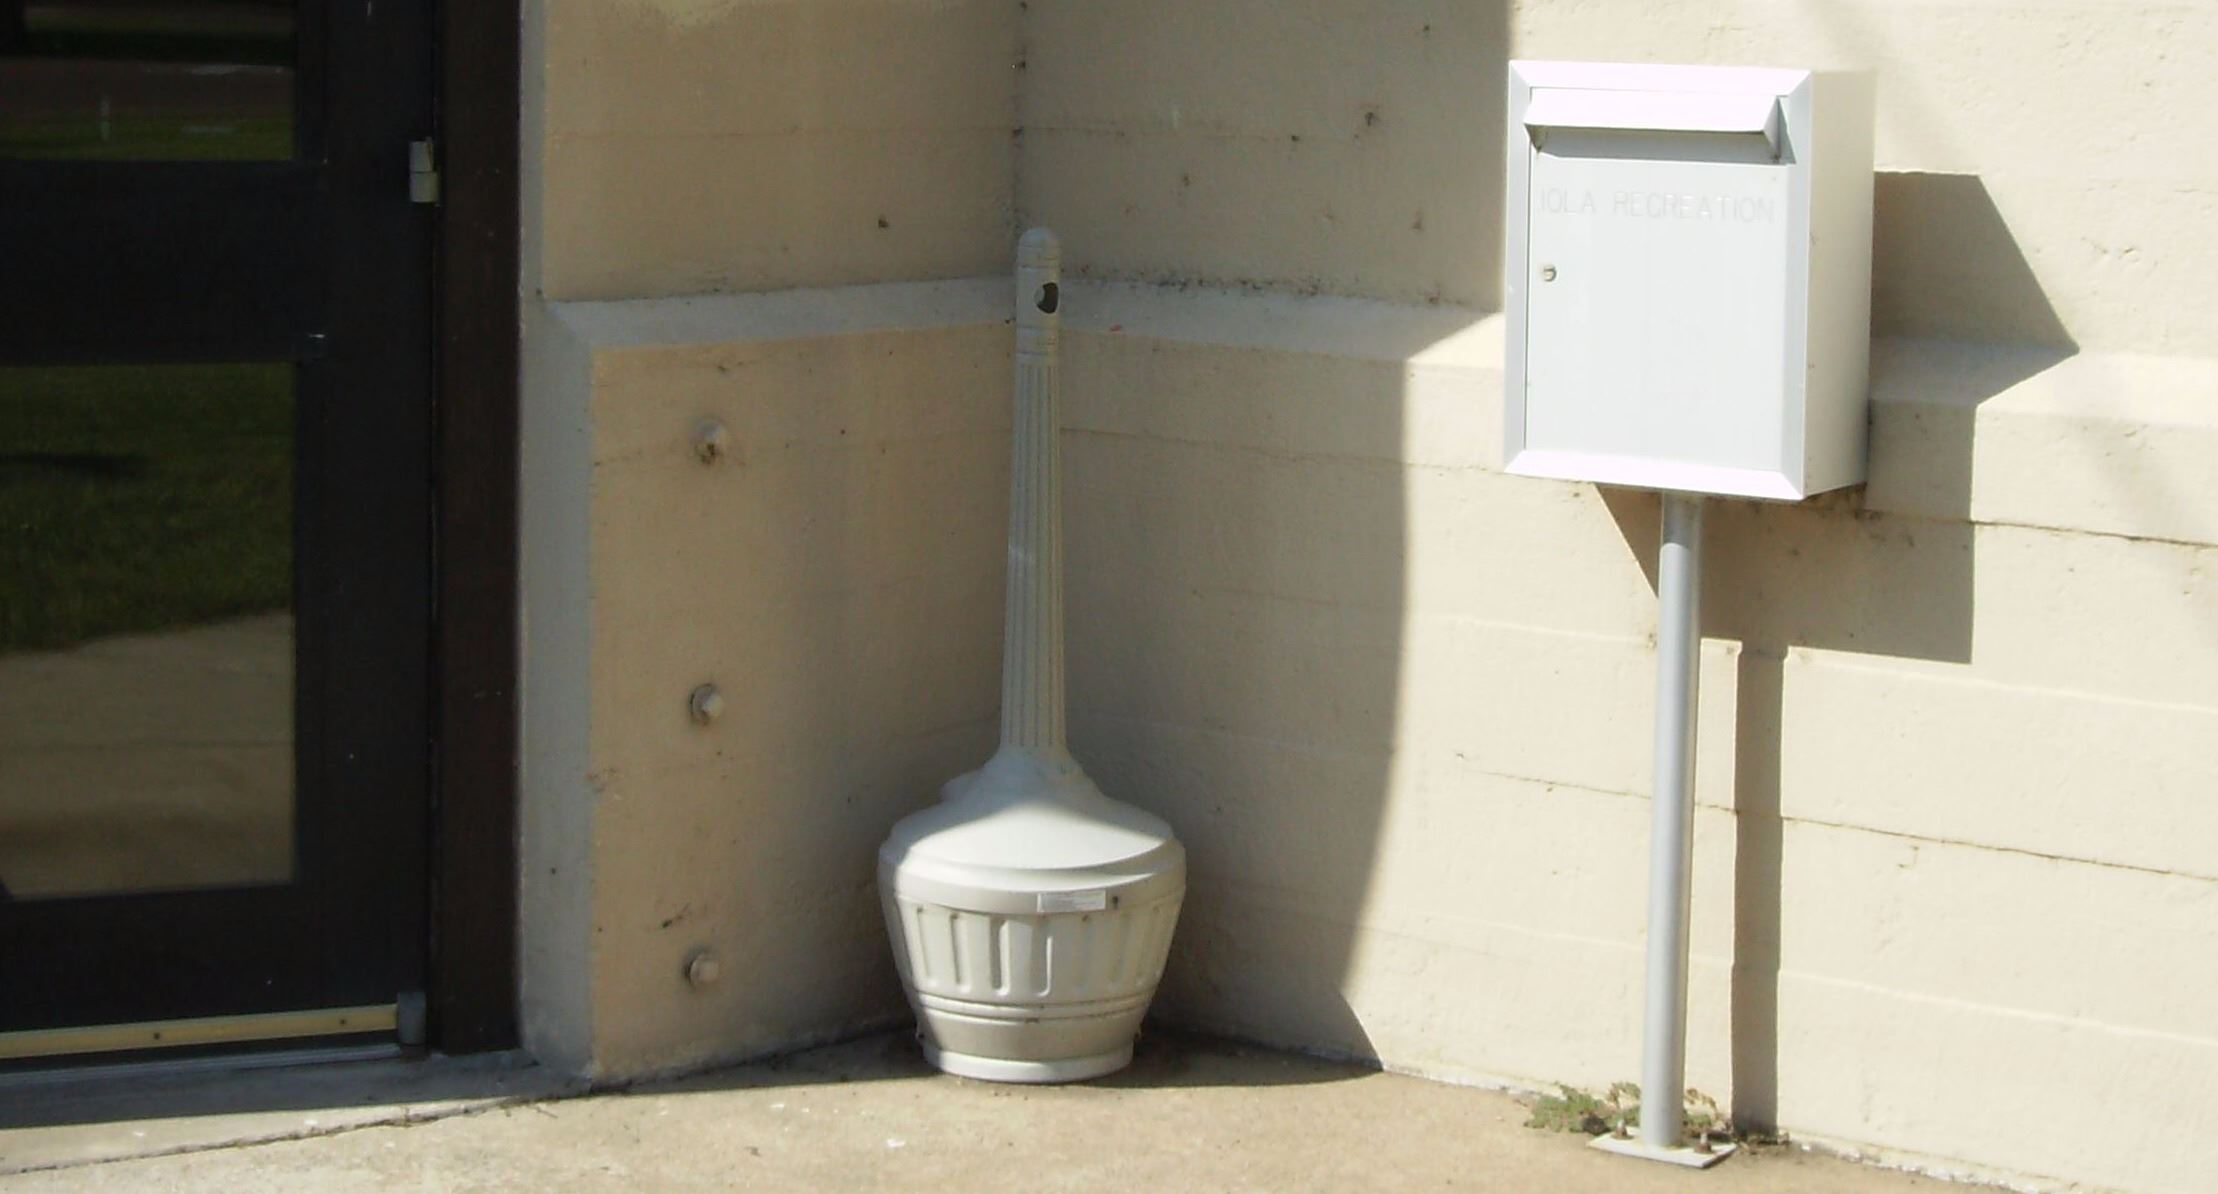 Recreation Building drop box located on the southeast side of the building